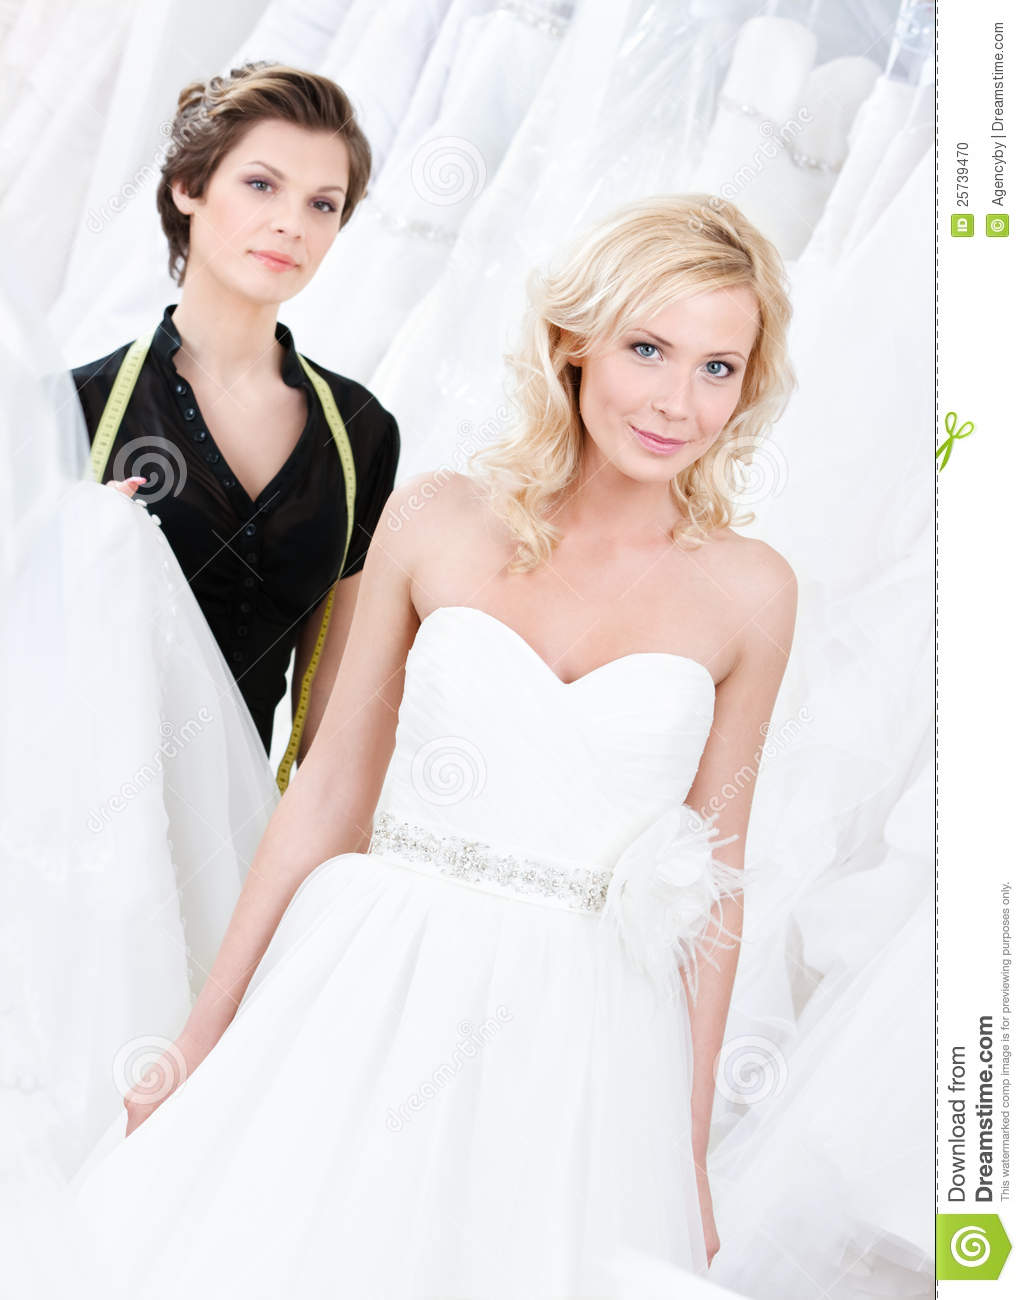 Bride likes her wedding gown